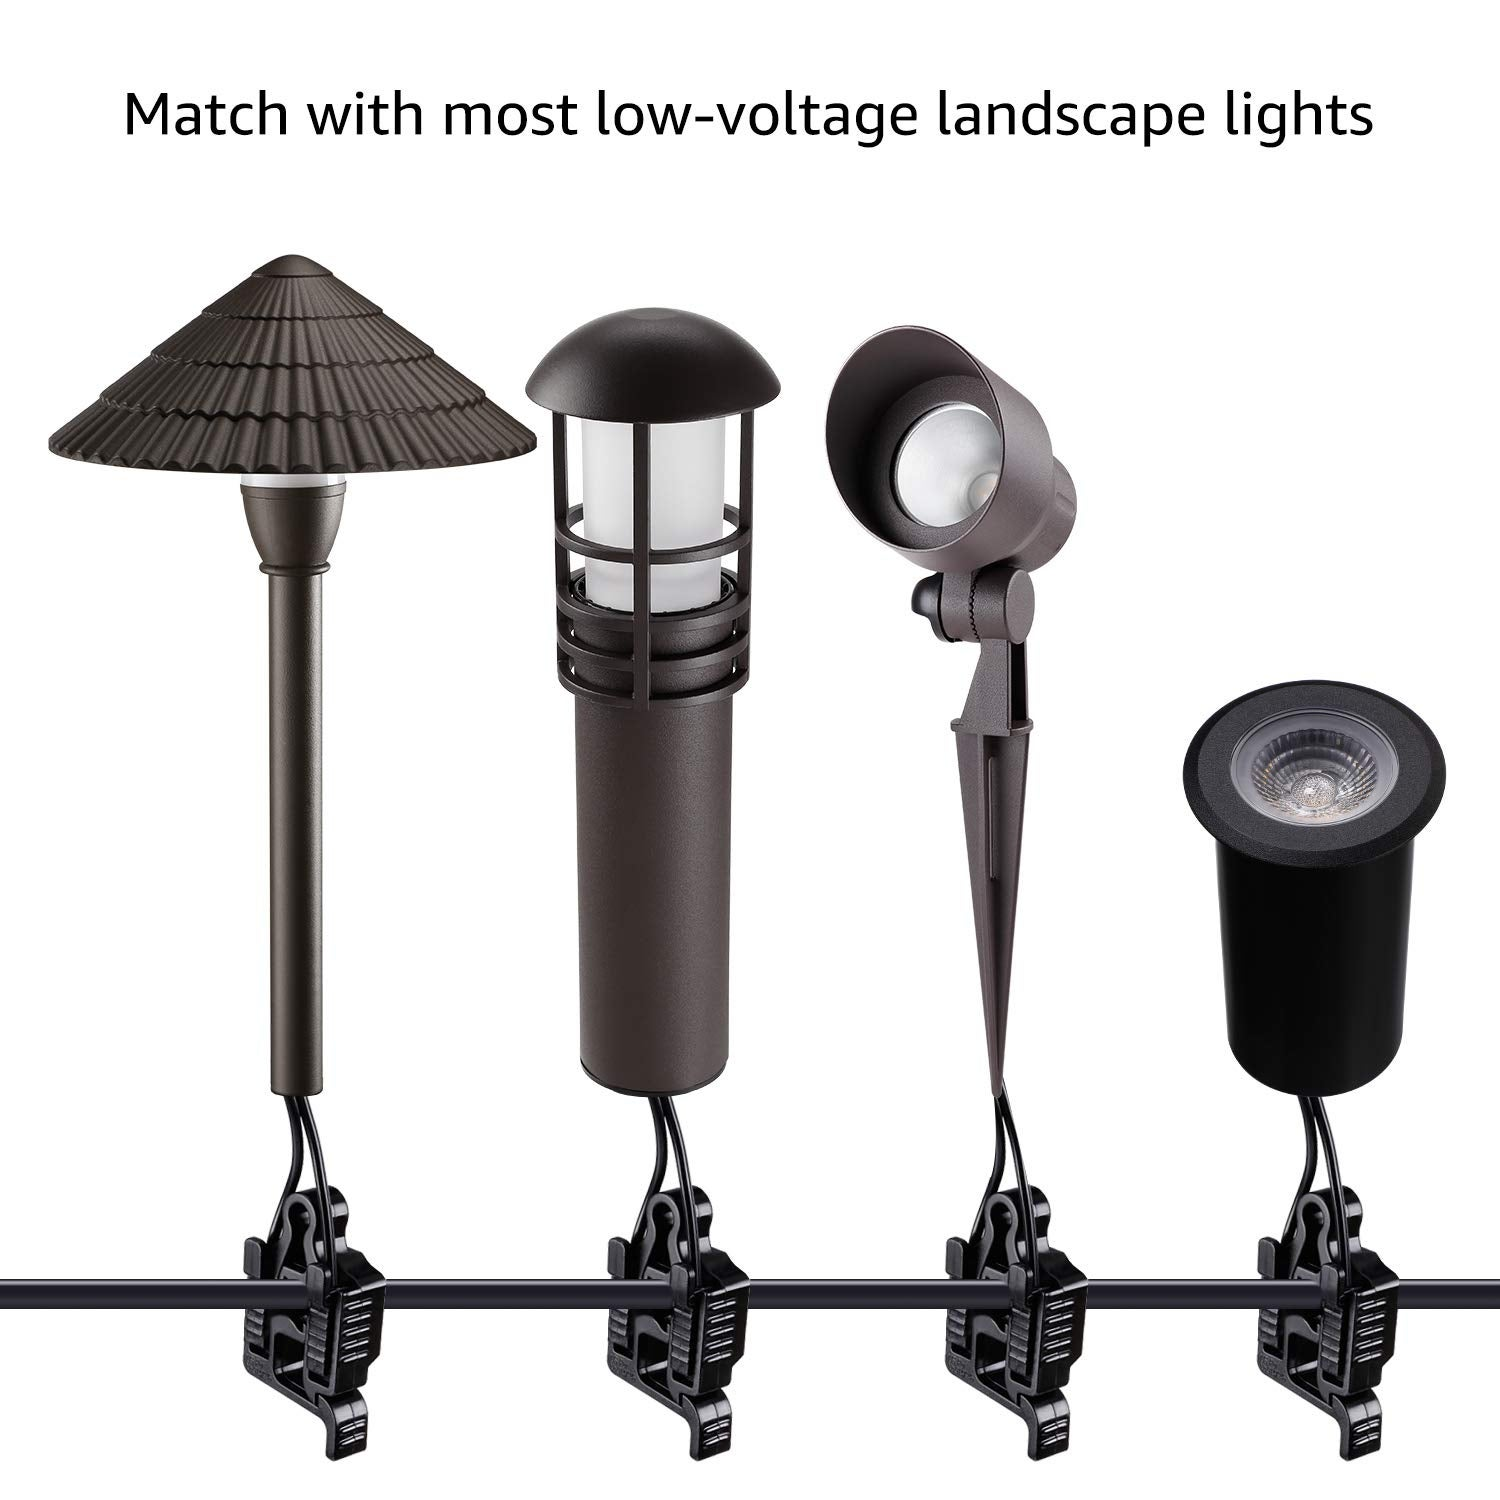 Wire Connectors for Low Voltage Landscape Lighting on